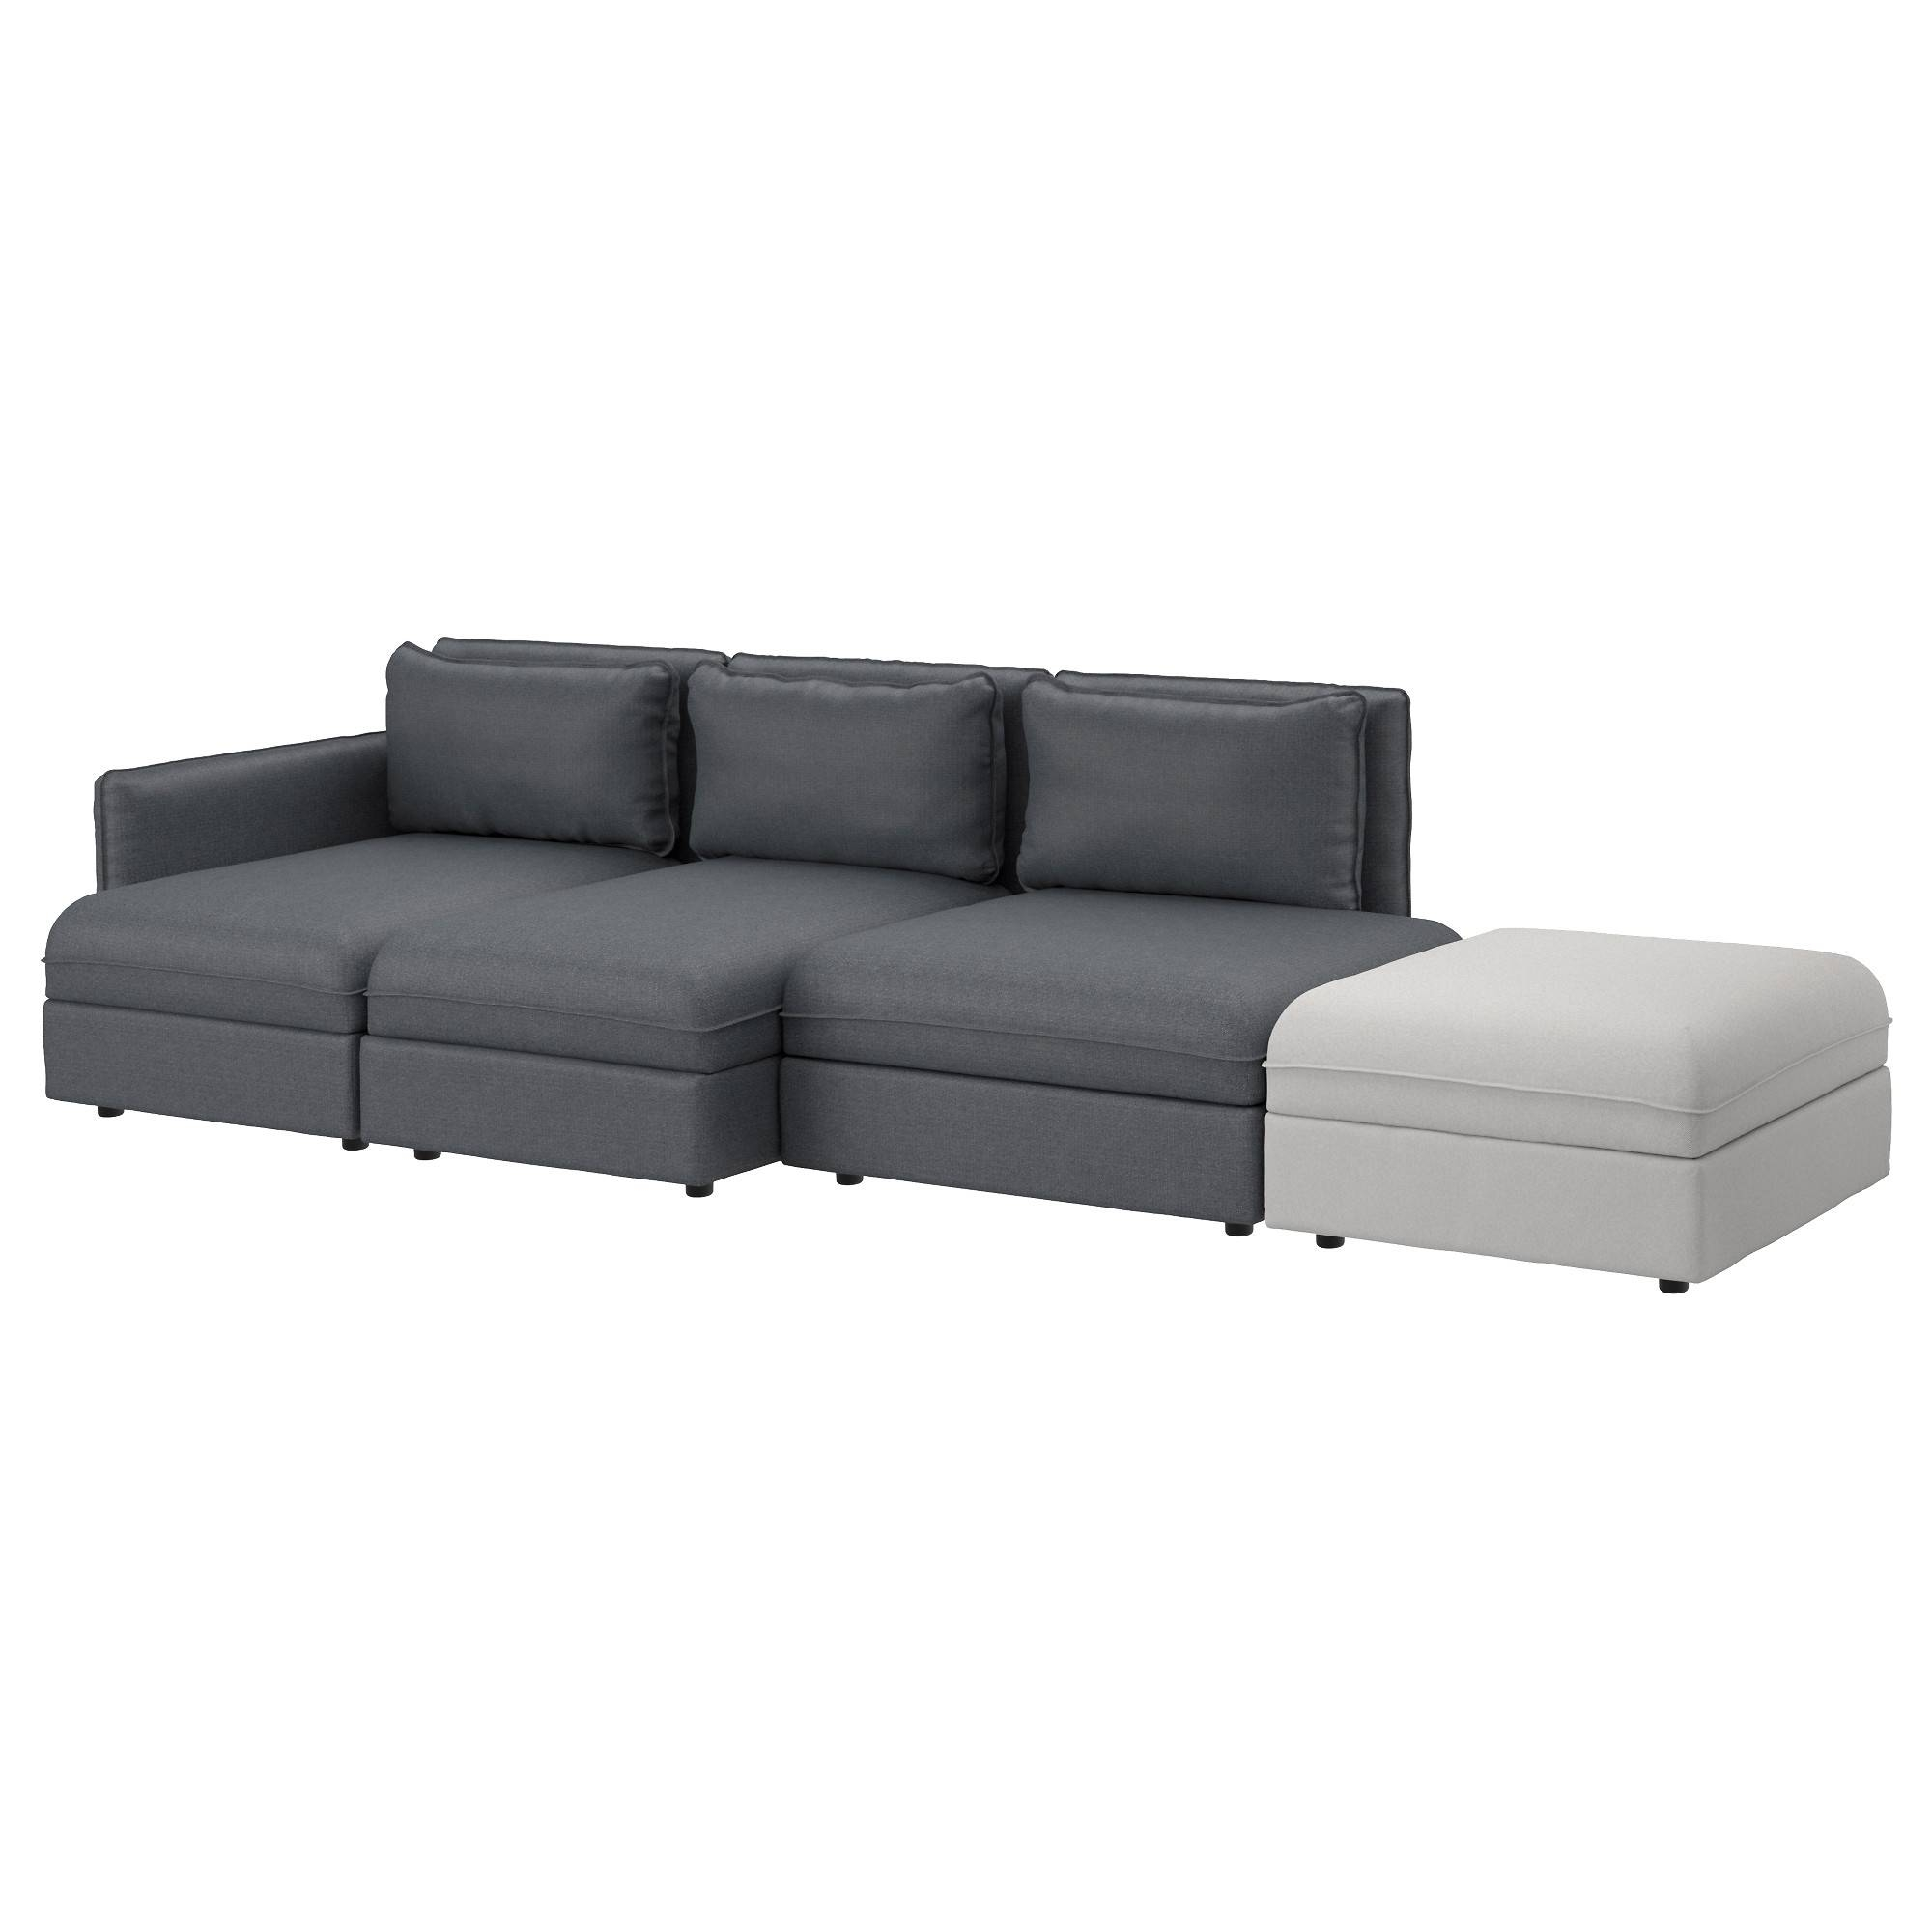 Sectional Sofas & Couches - Ikea with regard to Angled Sofa Sectional (Image 26 of 30)